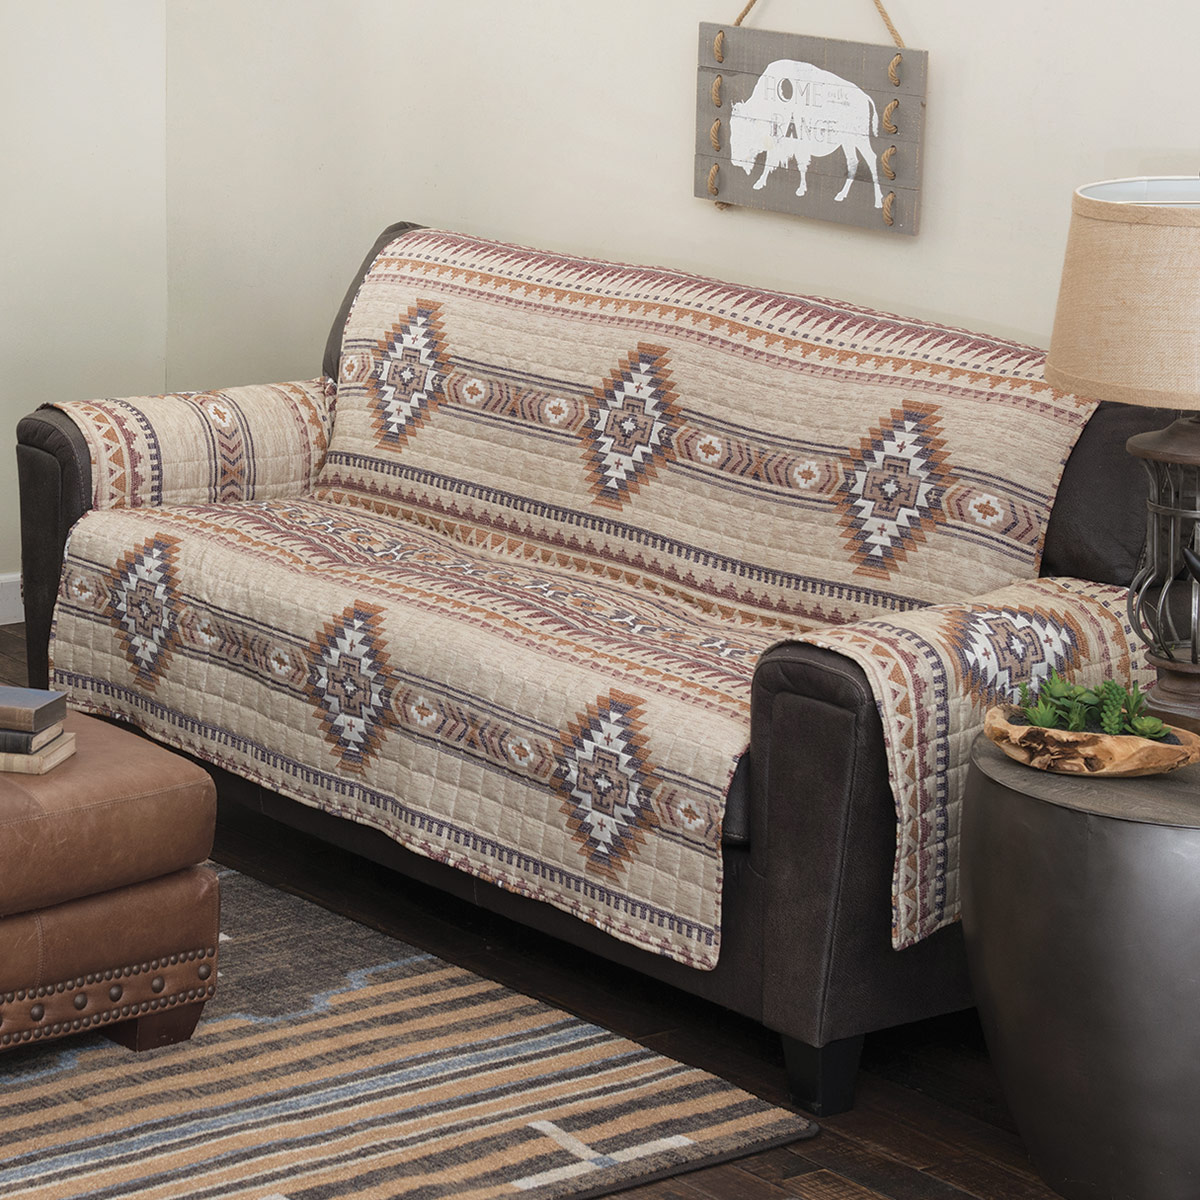 Southern Flare Sofa Cover - BACKORDERED UNTIL 7/16/2021